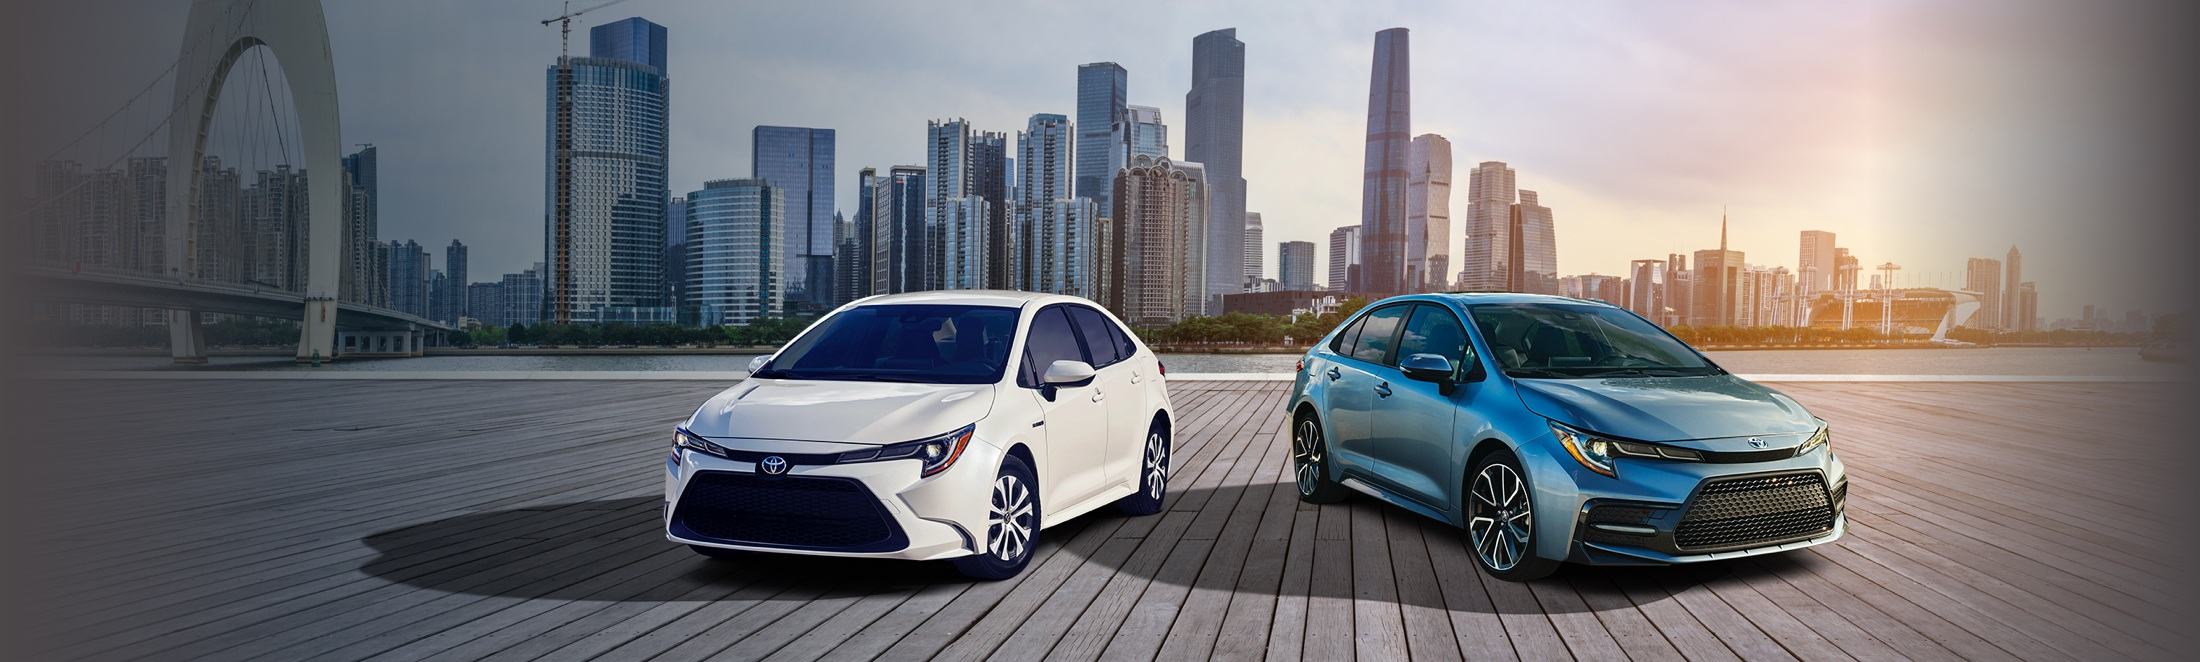 toyota-register-for-updates-2020-corolla-hybrid-corolla-sedan-l